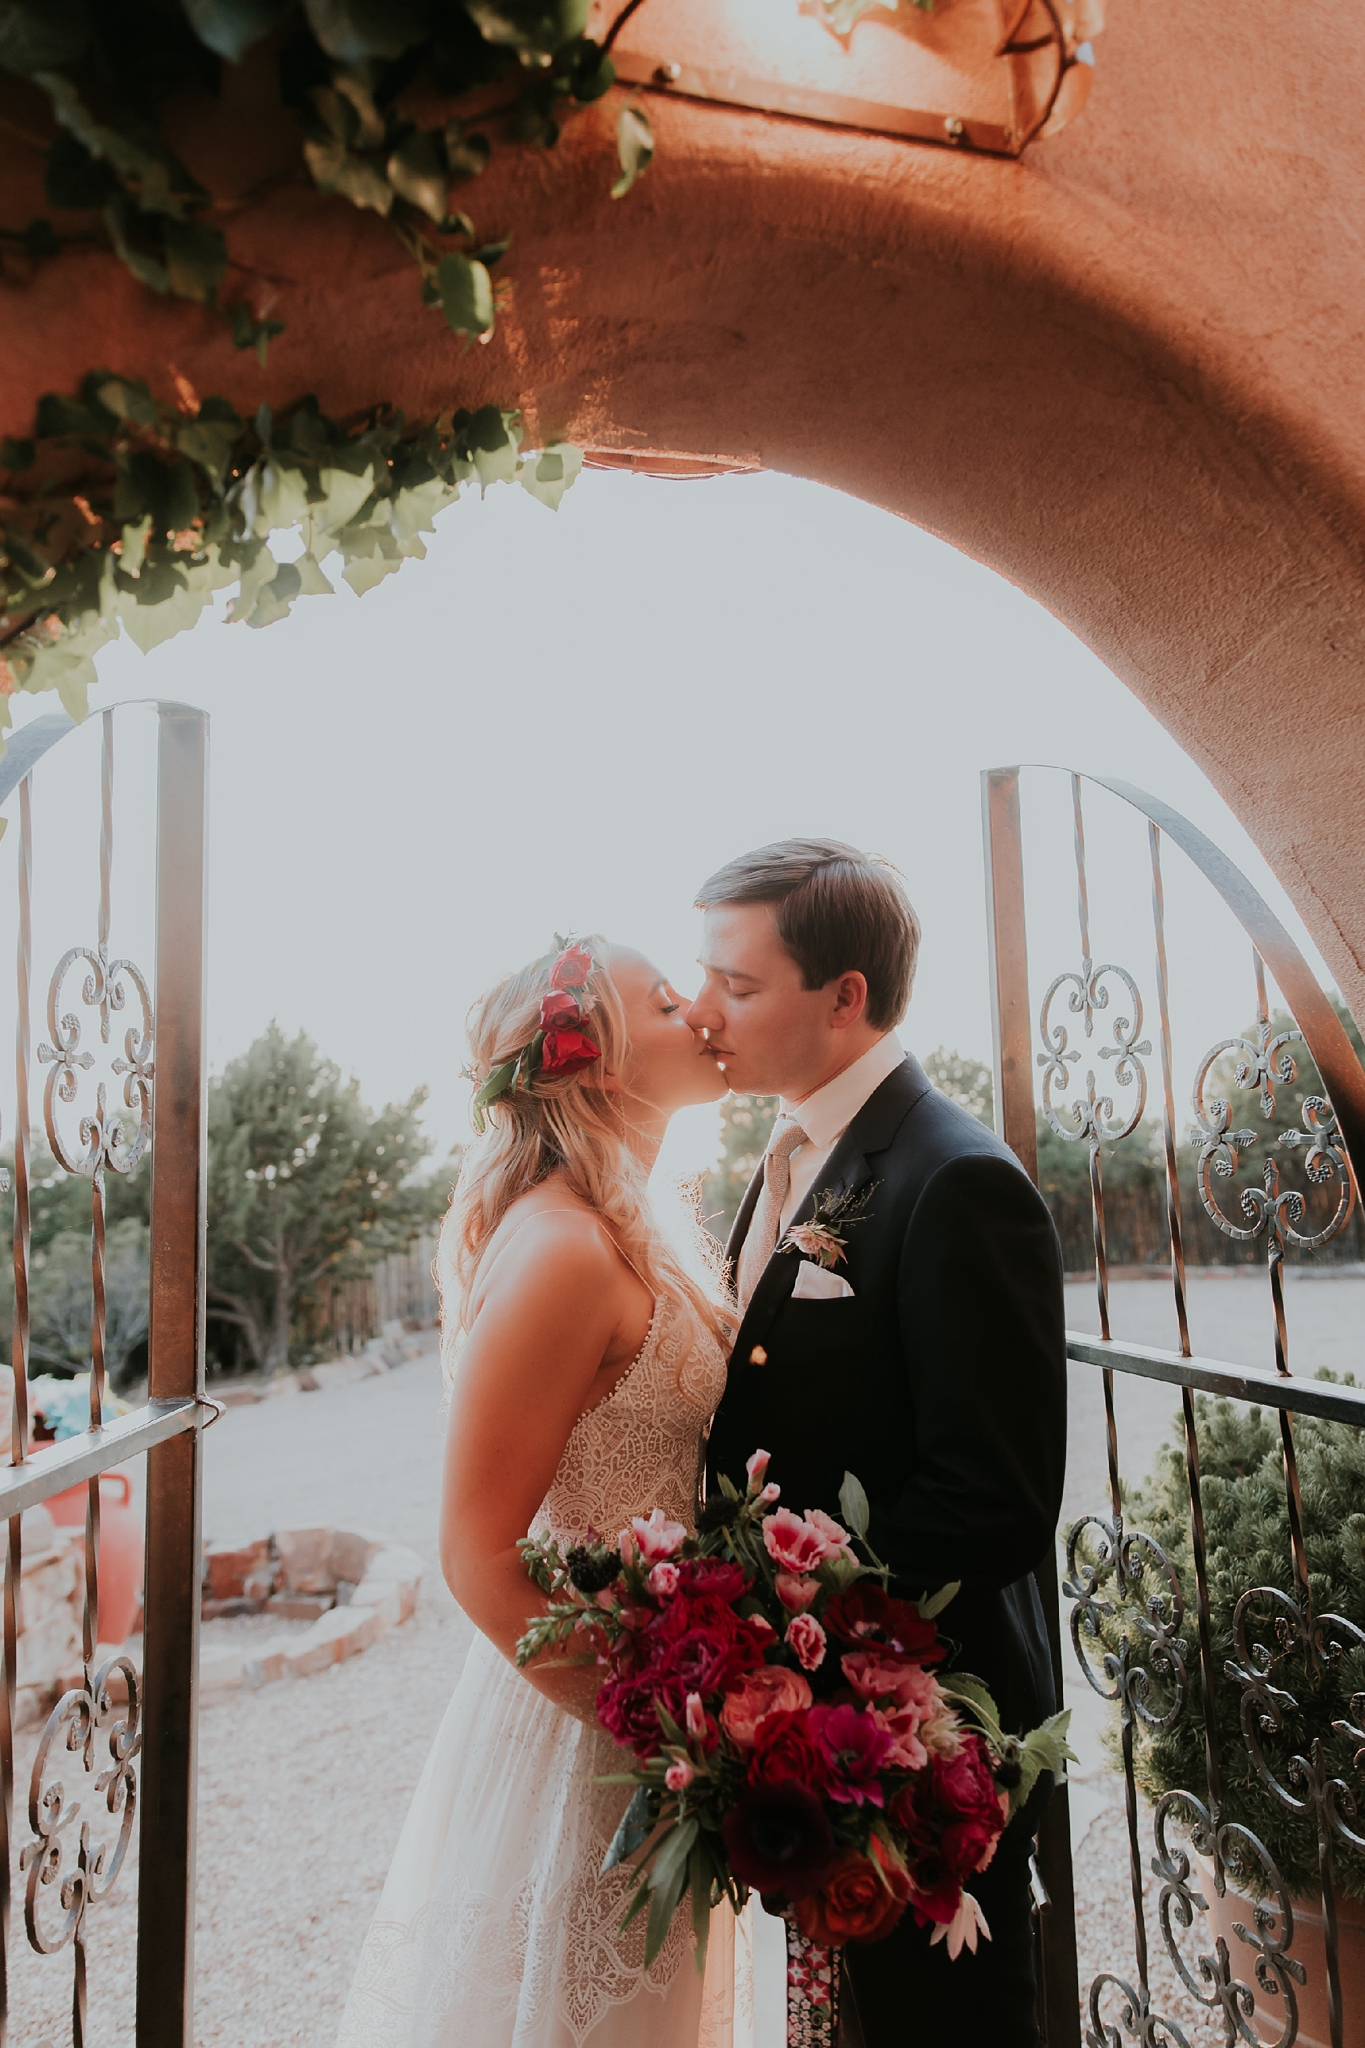 Alicia+lucia+photography+-+albuquerque+wedding+photographer+-+santa+fe+wedding+photography+-+new+mexico+wedding+photographer+-+new+mexico+wedding+-+albuquerque+wedding+-+santa+fe+wedding+-+wedding+romantics_0015.jpg